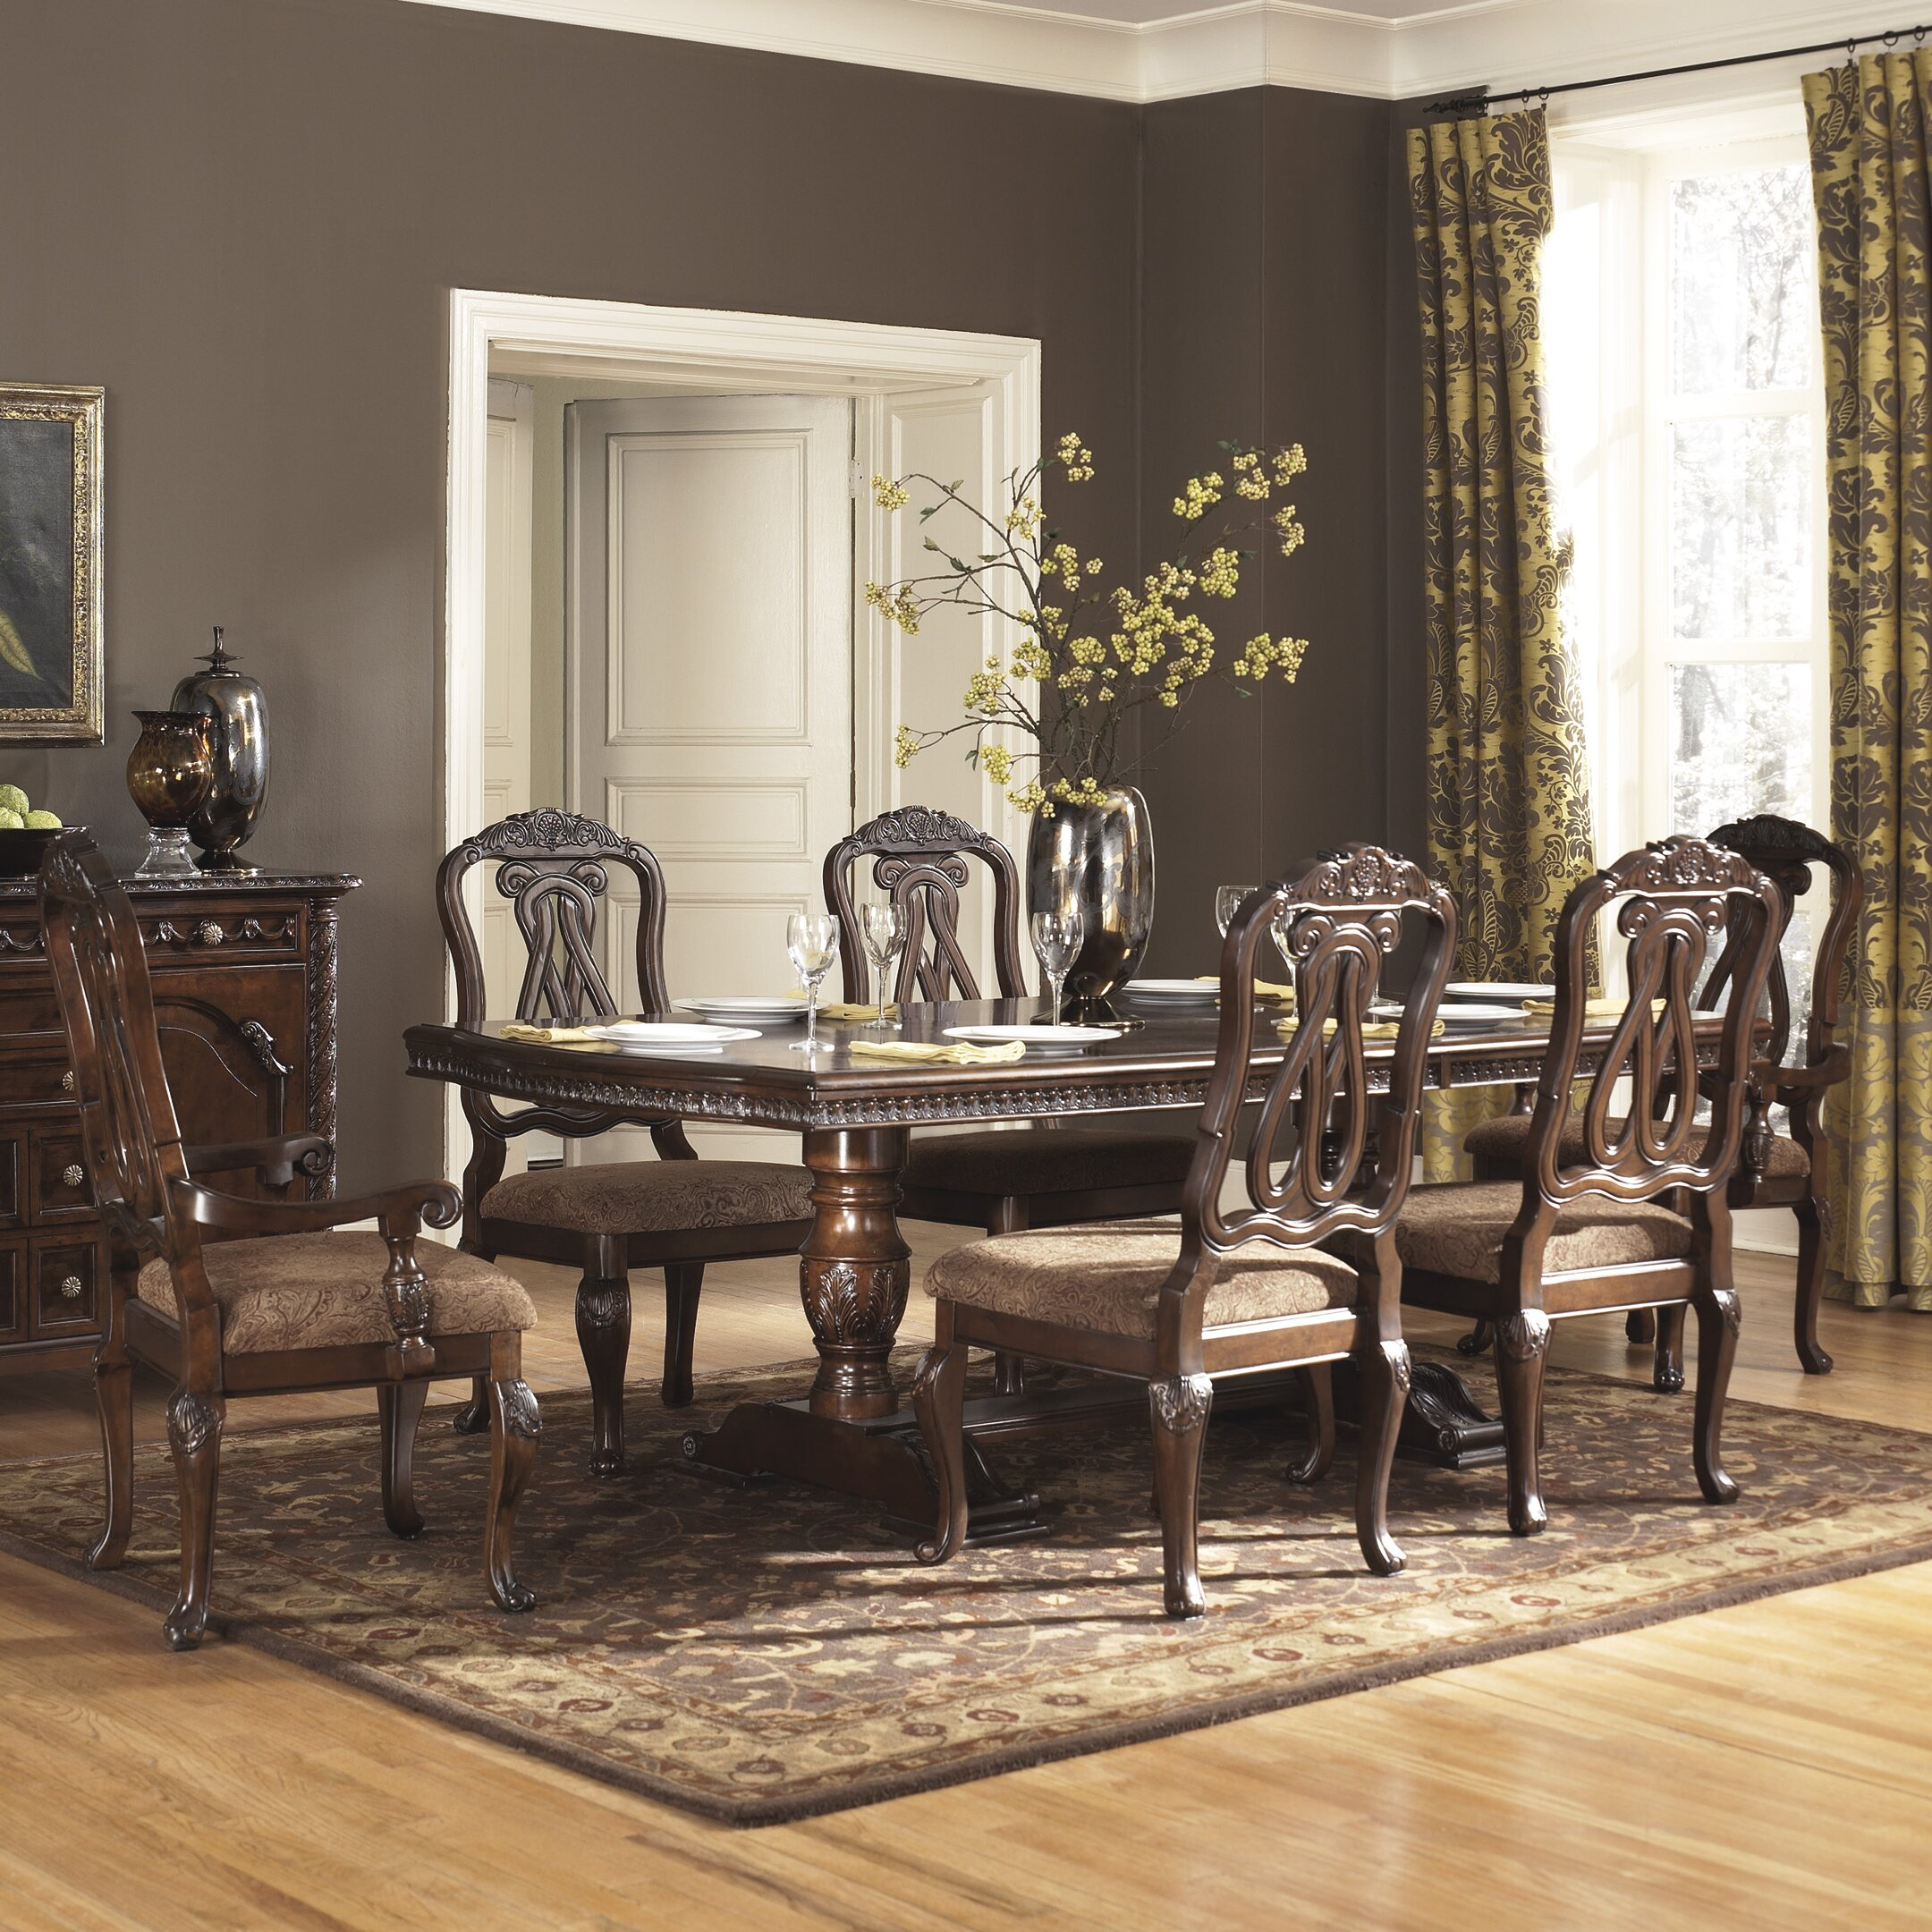 Signature design by ashley north shore 7 piece dining set reviews wayfair - Ashley north shore dining room set ...